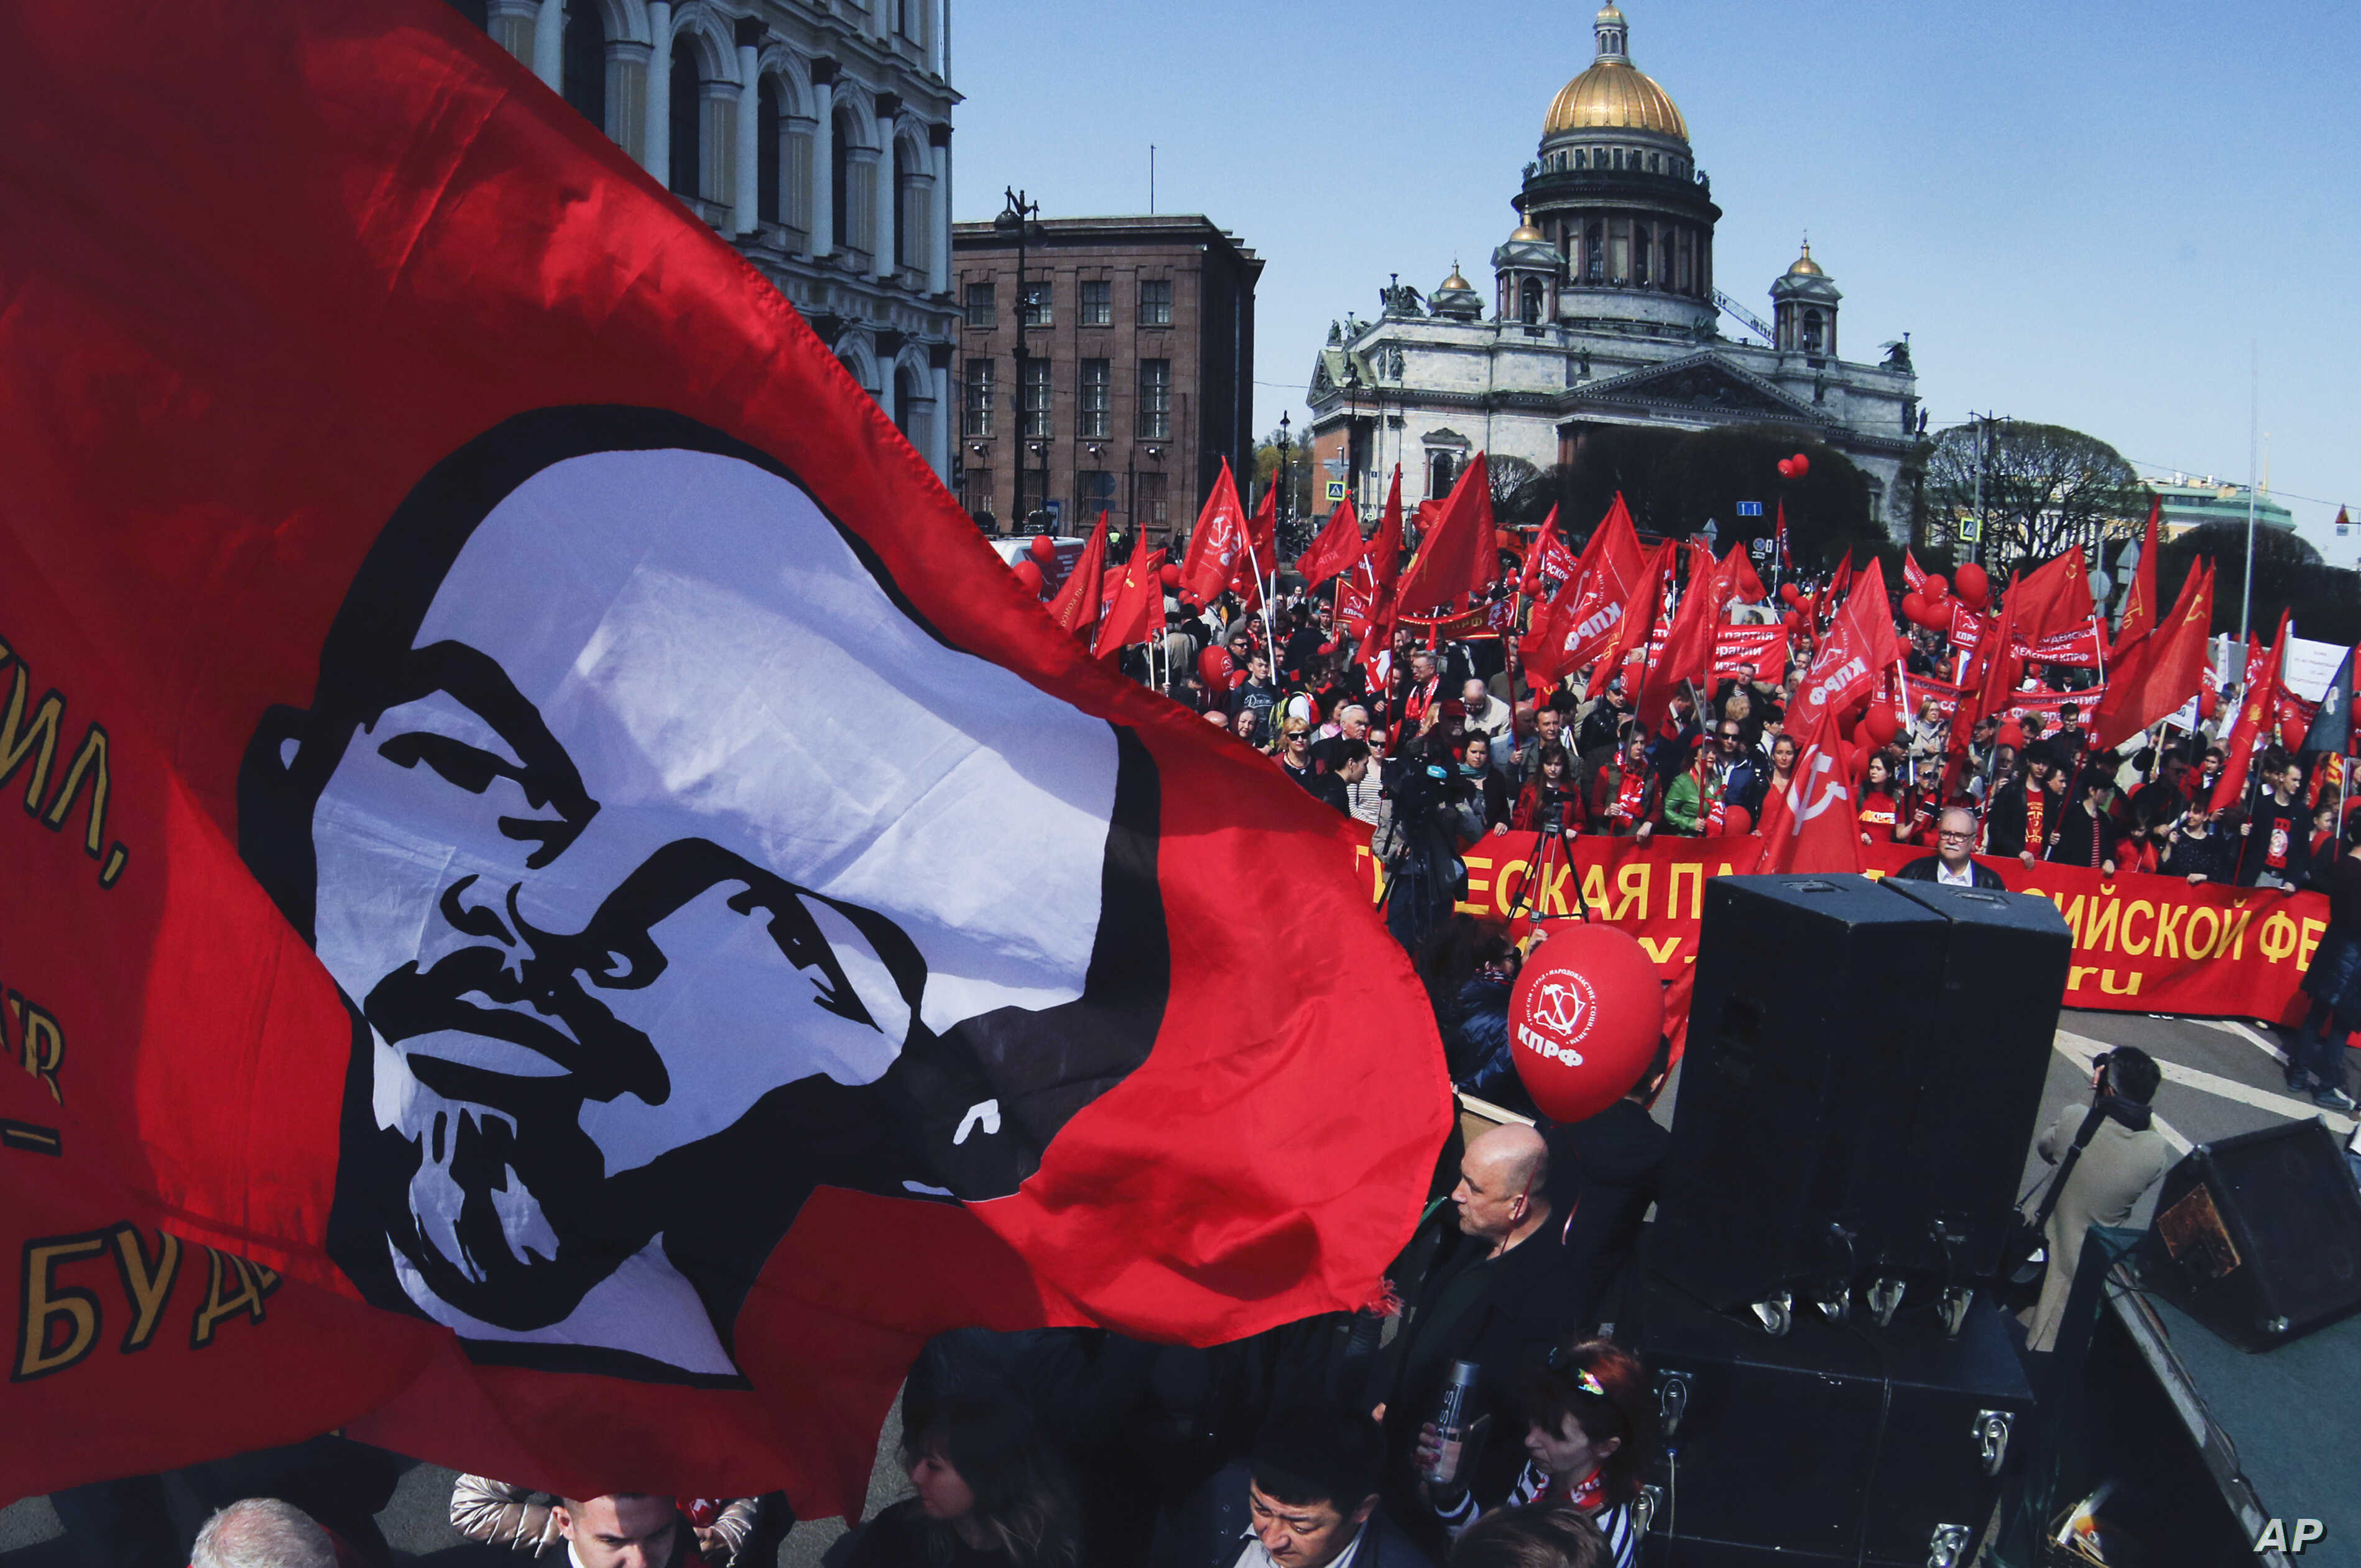 Communist party supporters carry a flag depicting Soviet Union founder Lenin during a May Day rally in St.Petersburg, Russia, May 1, 2019.